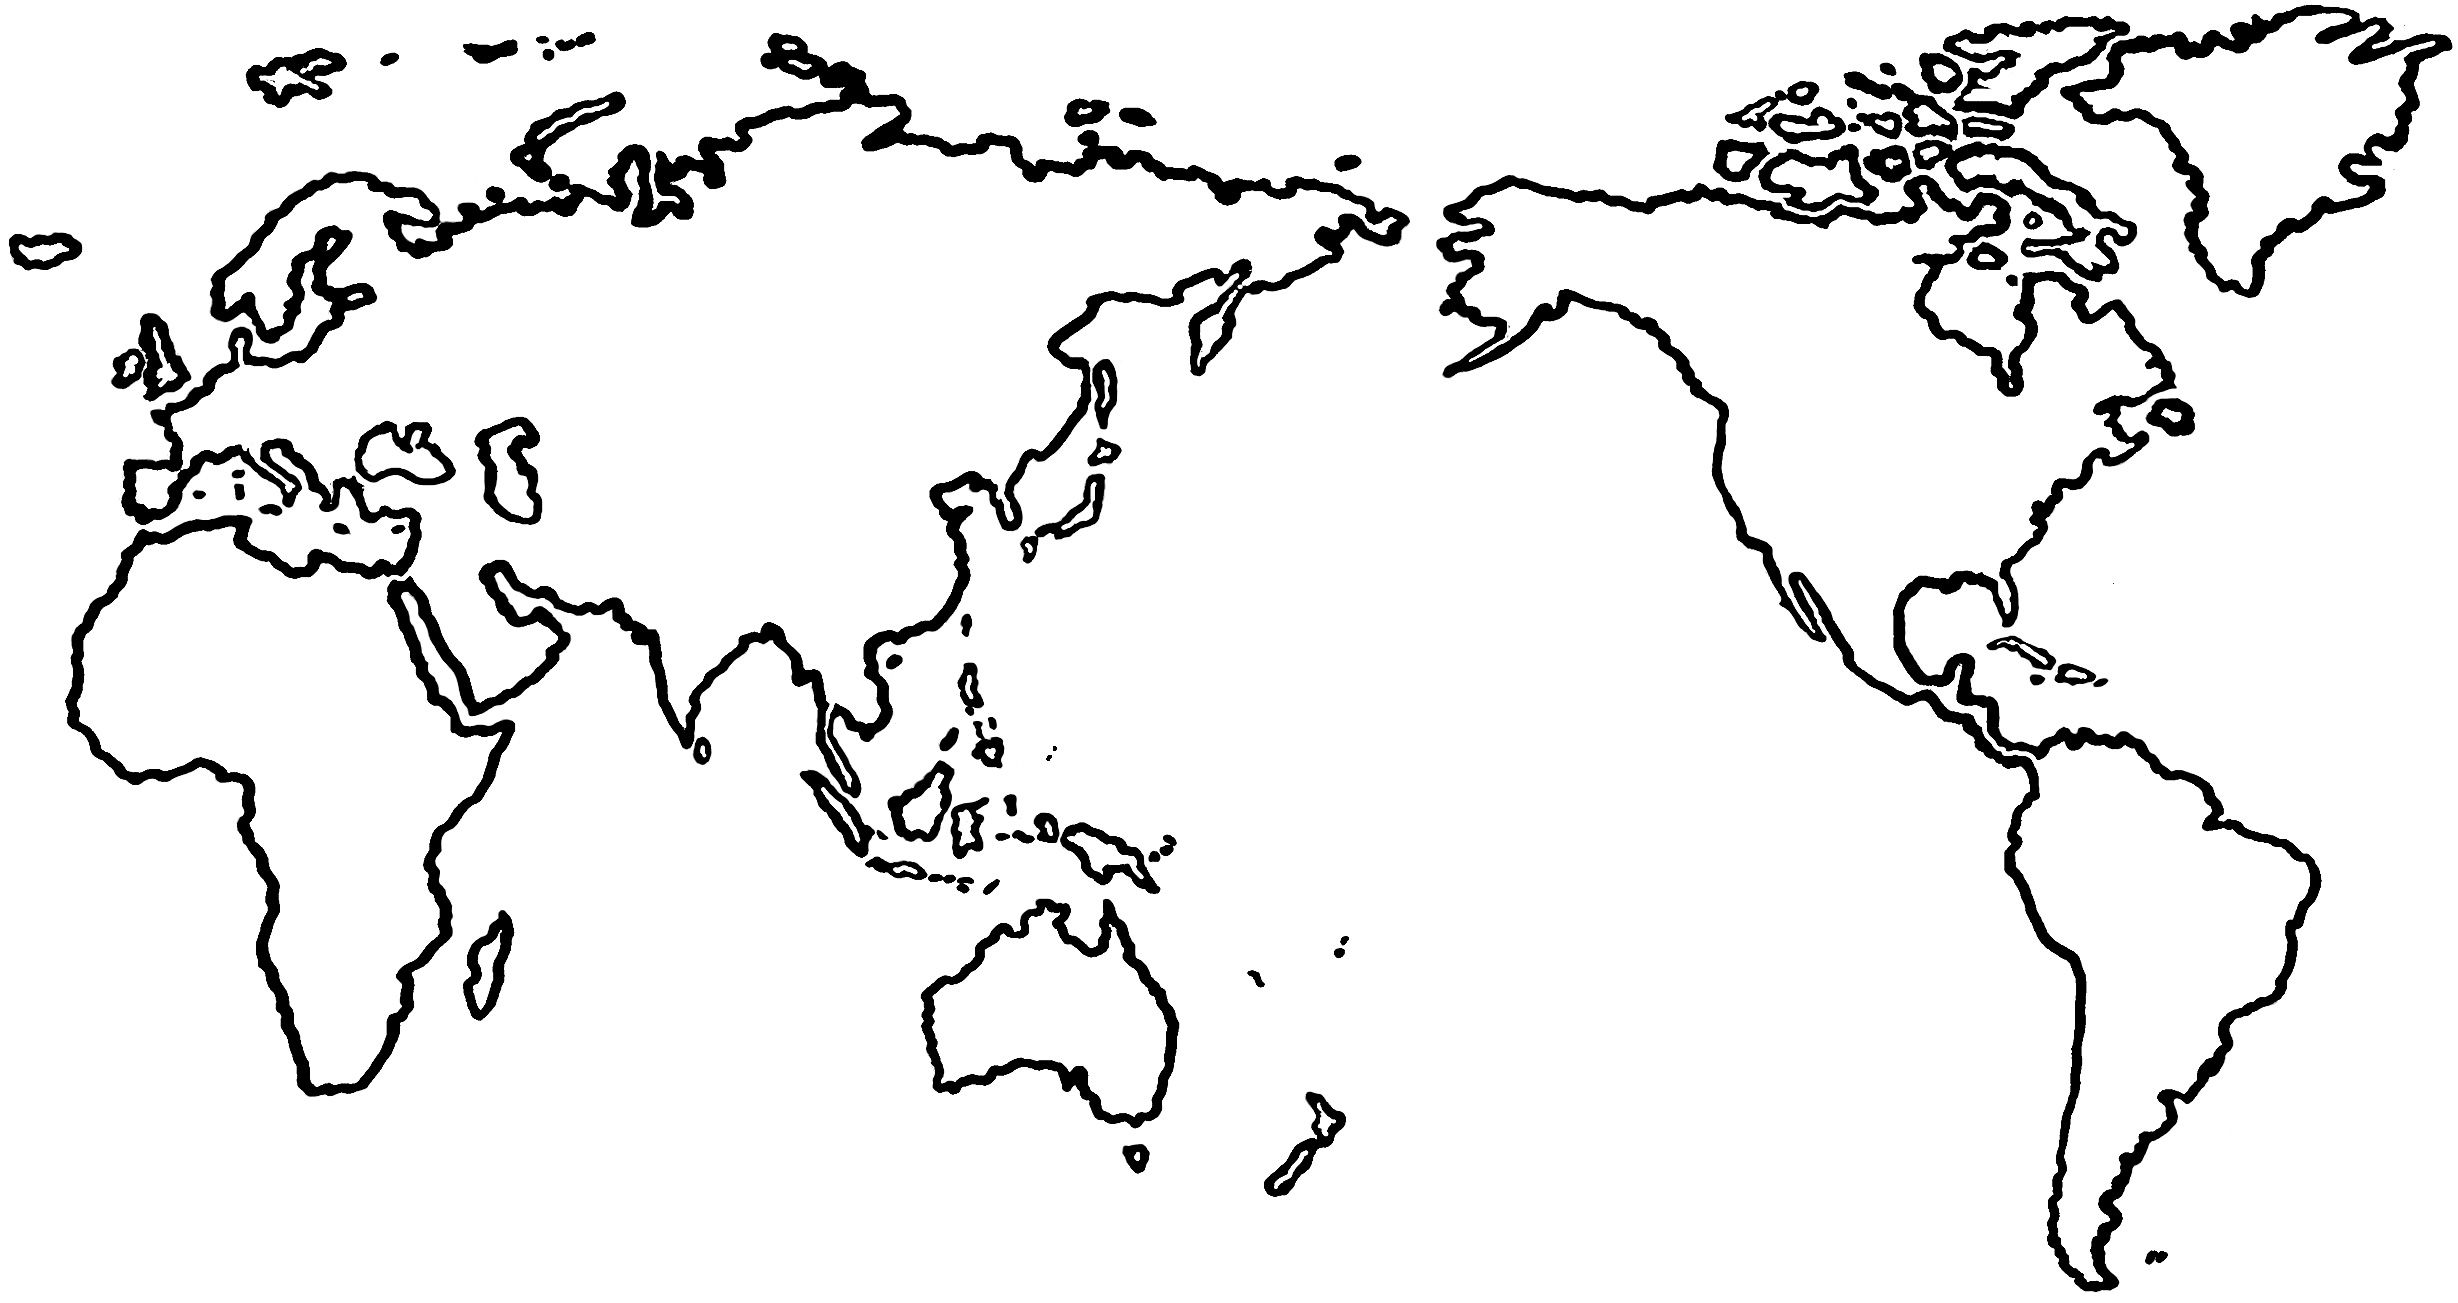 Pin by Sara Auger on 2014 | World map outline, World map template ...